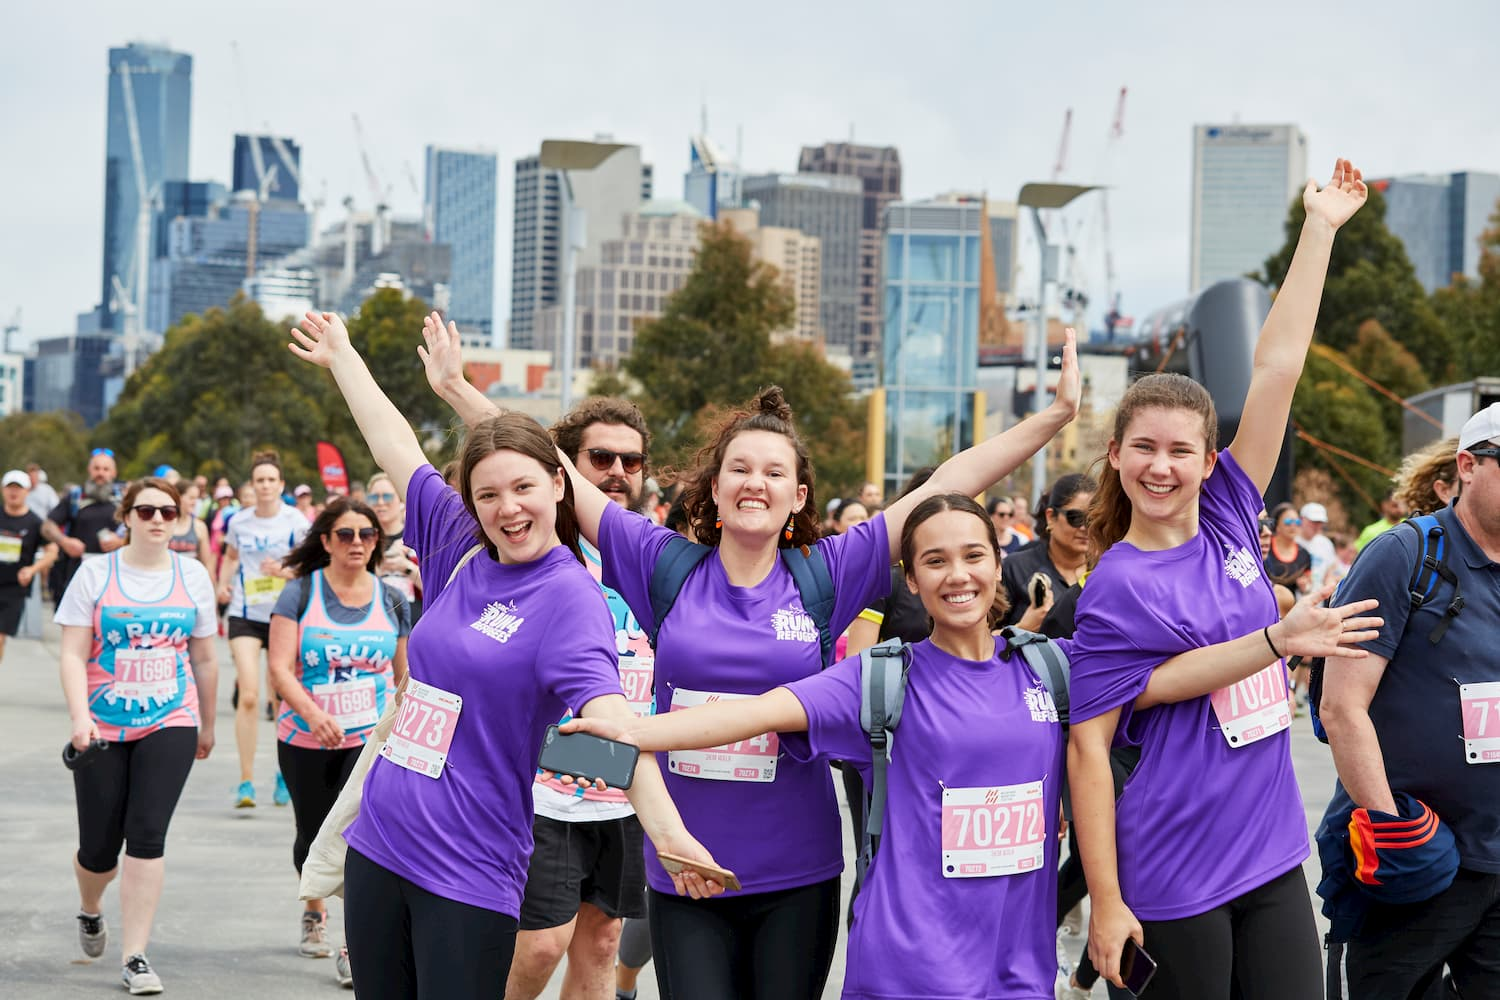 Fundraising team in Run 4 Refugees - Run Melbourne